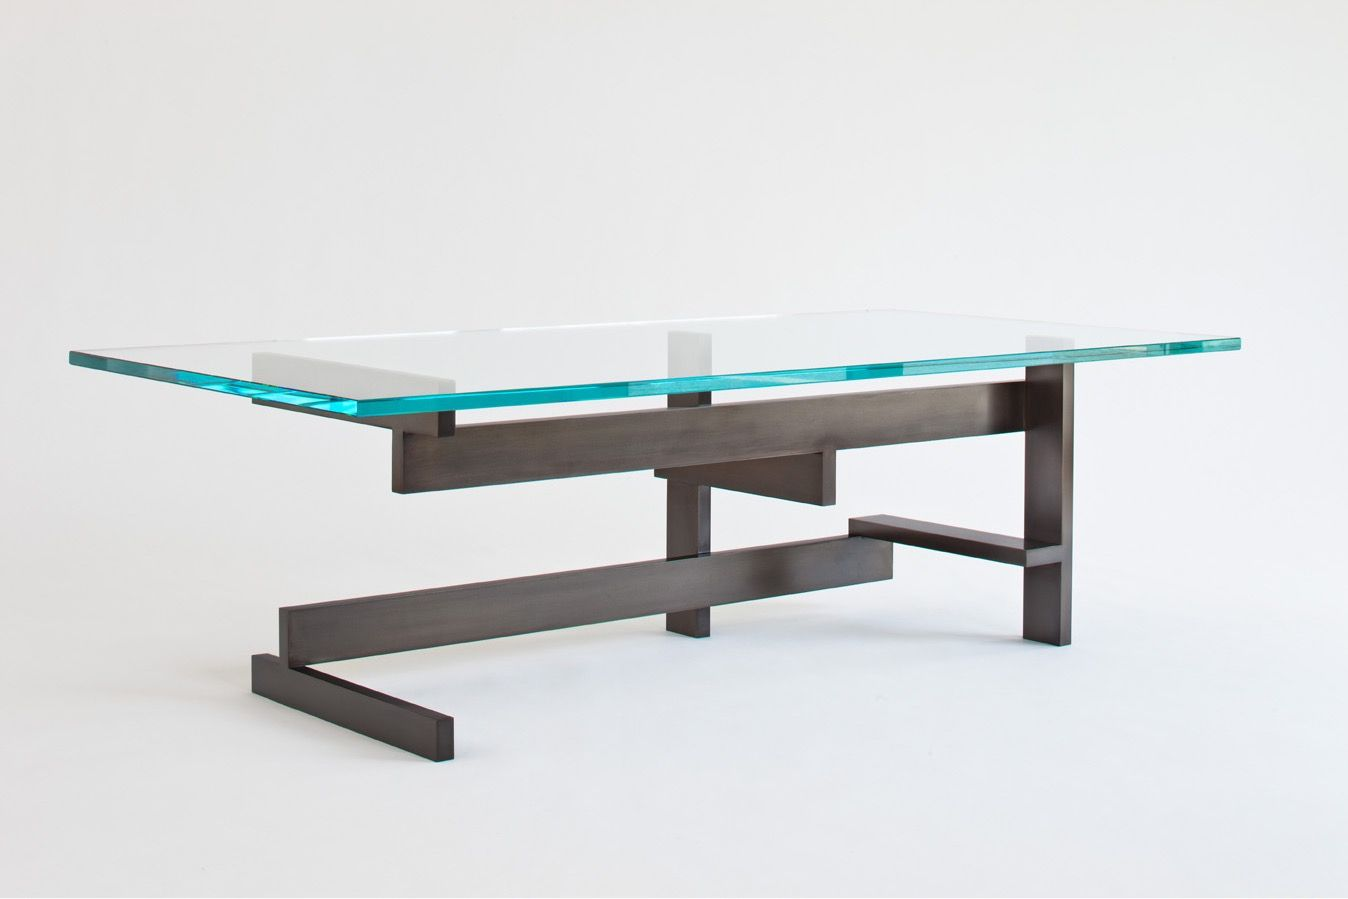 Handmade Modern Metal And Glass Coffee Table By Ck Metalcraft Llc